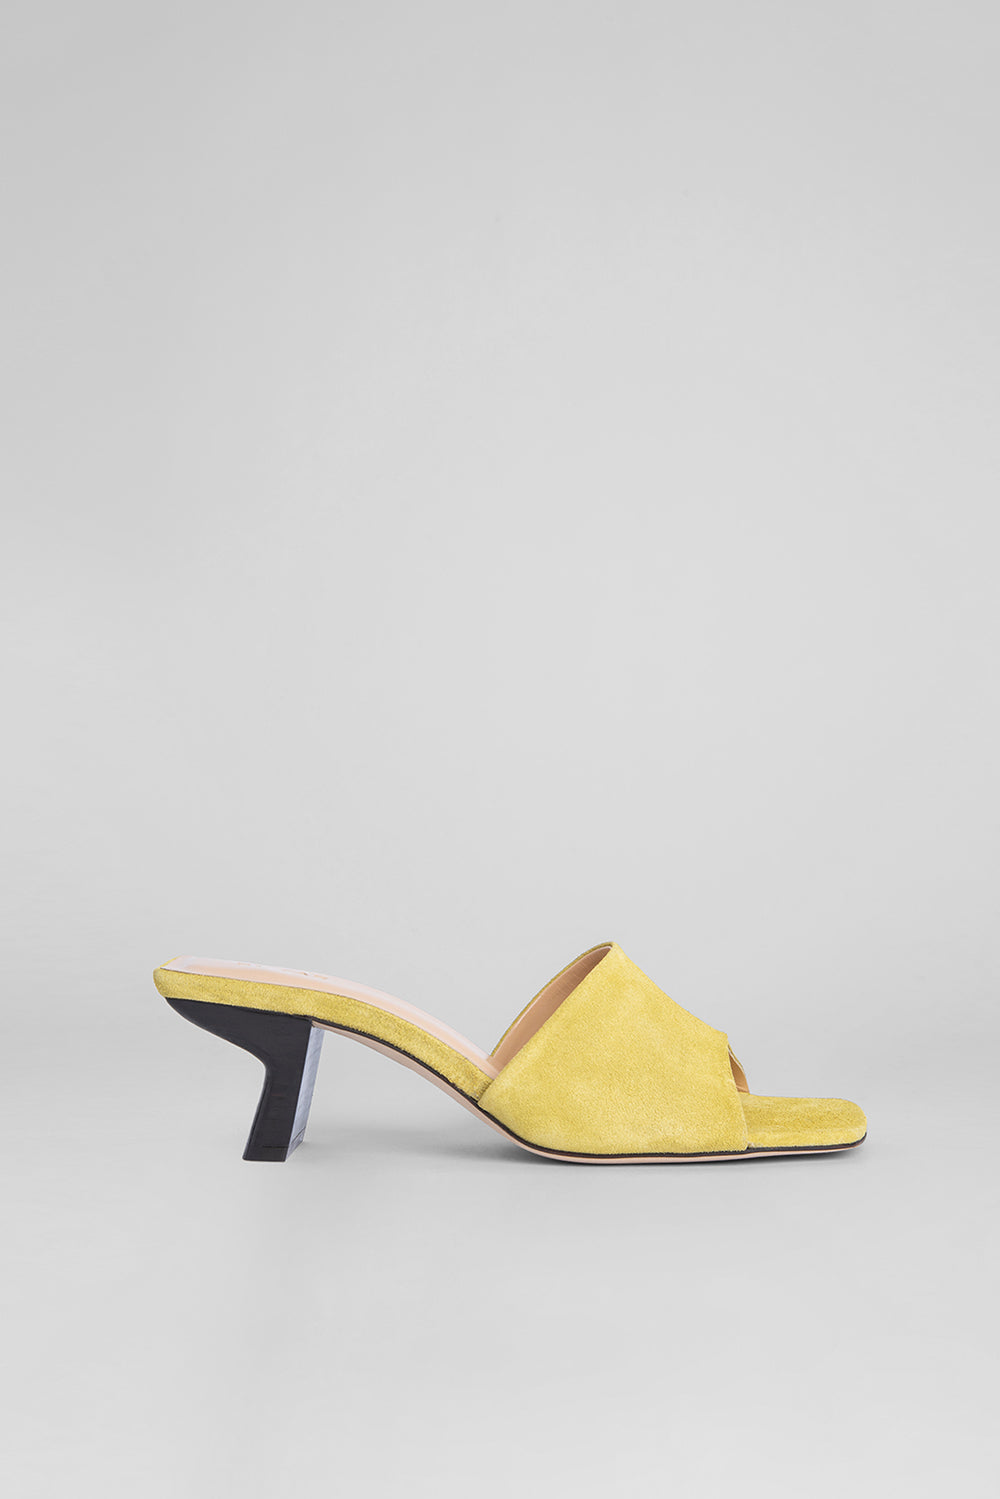 Lily LEMON Suede Leather